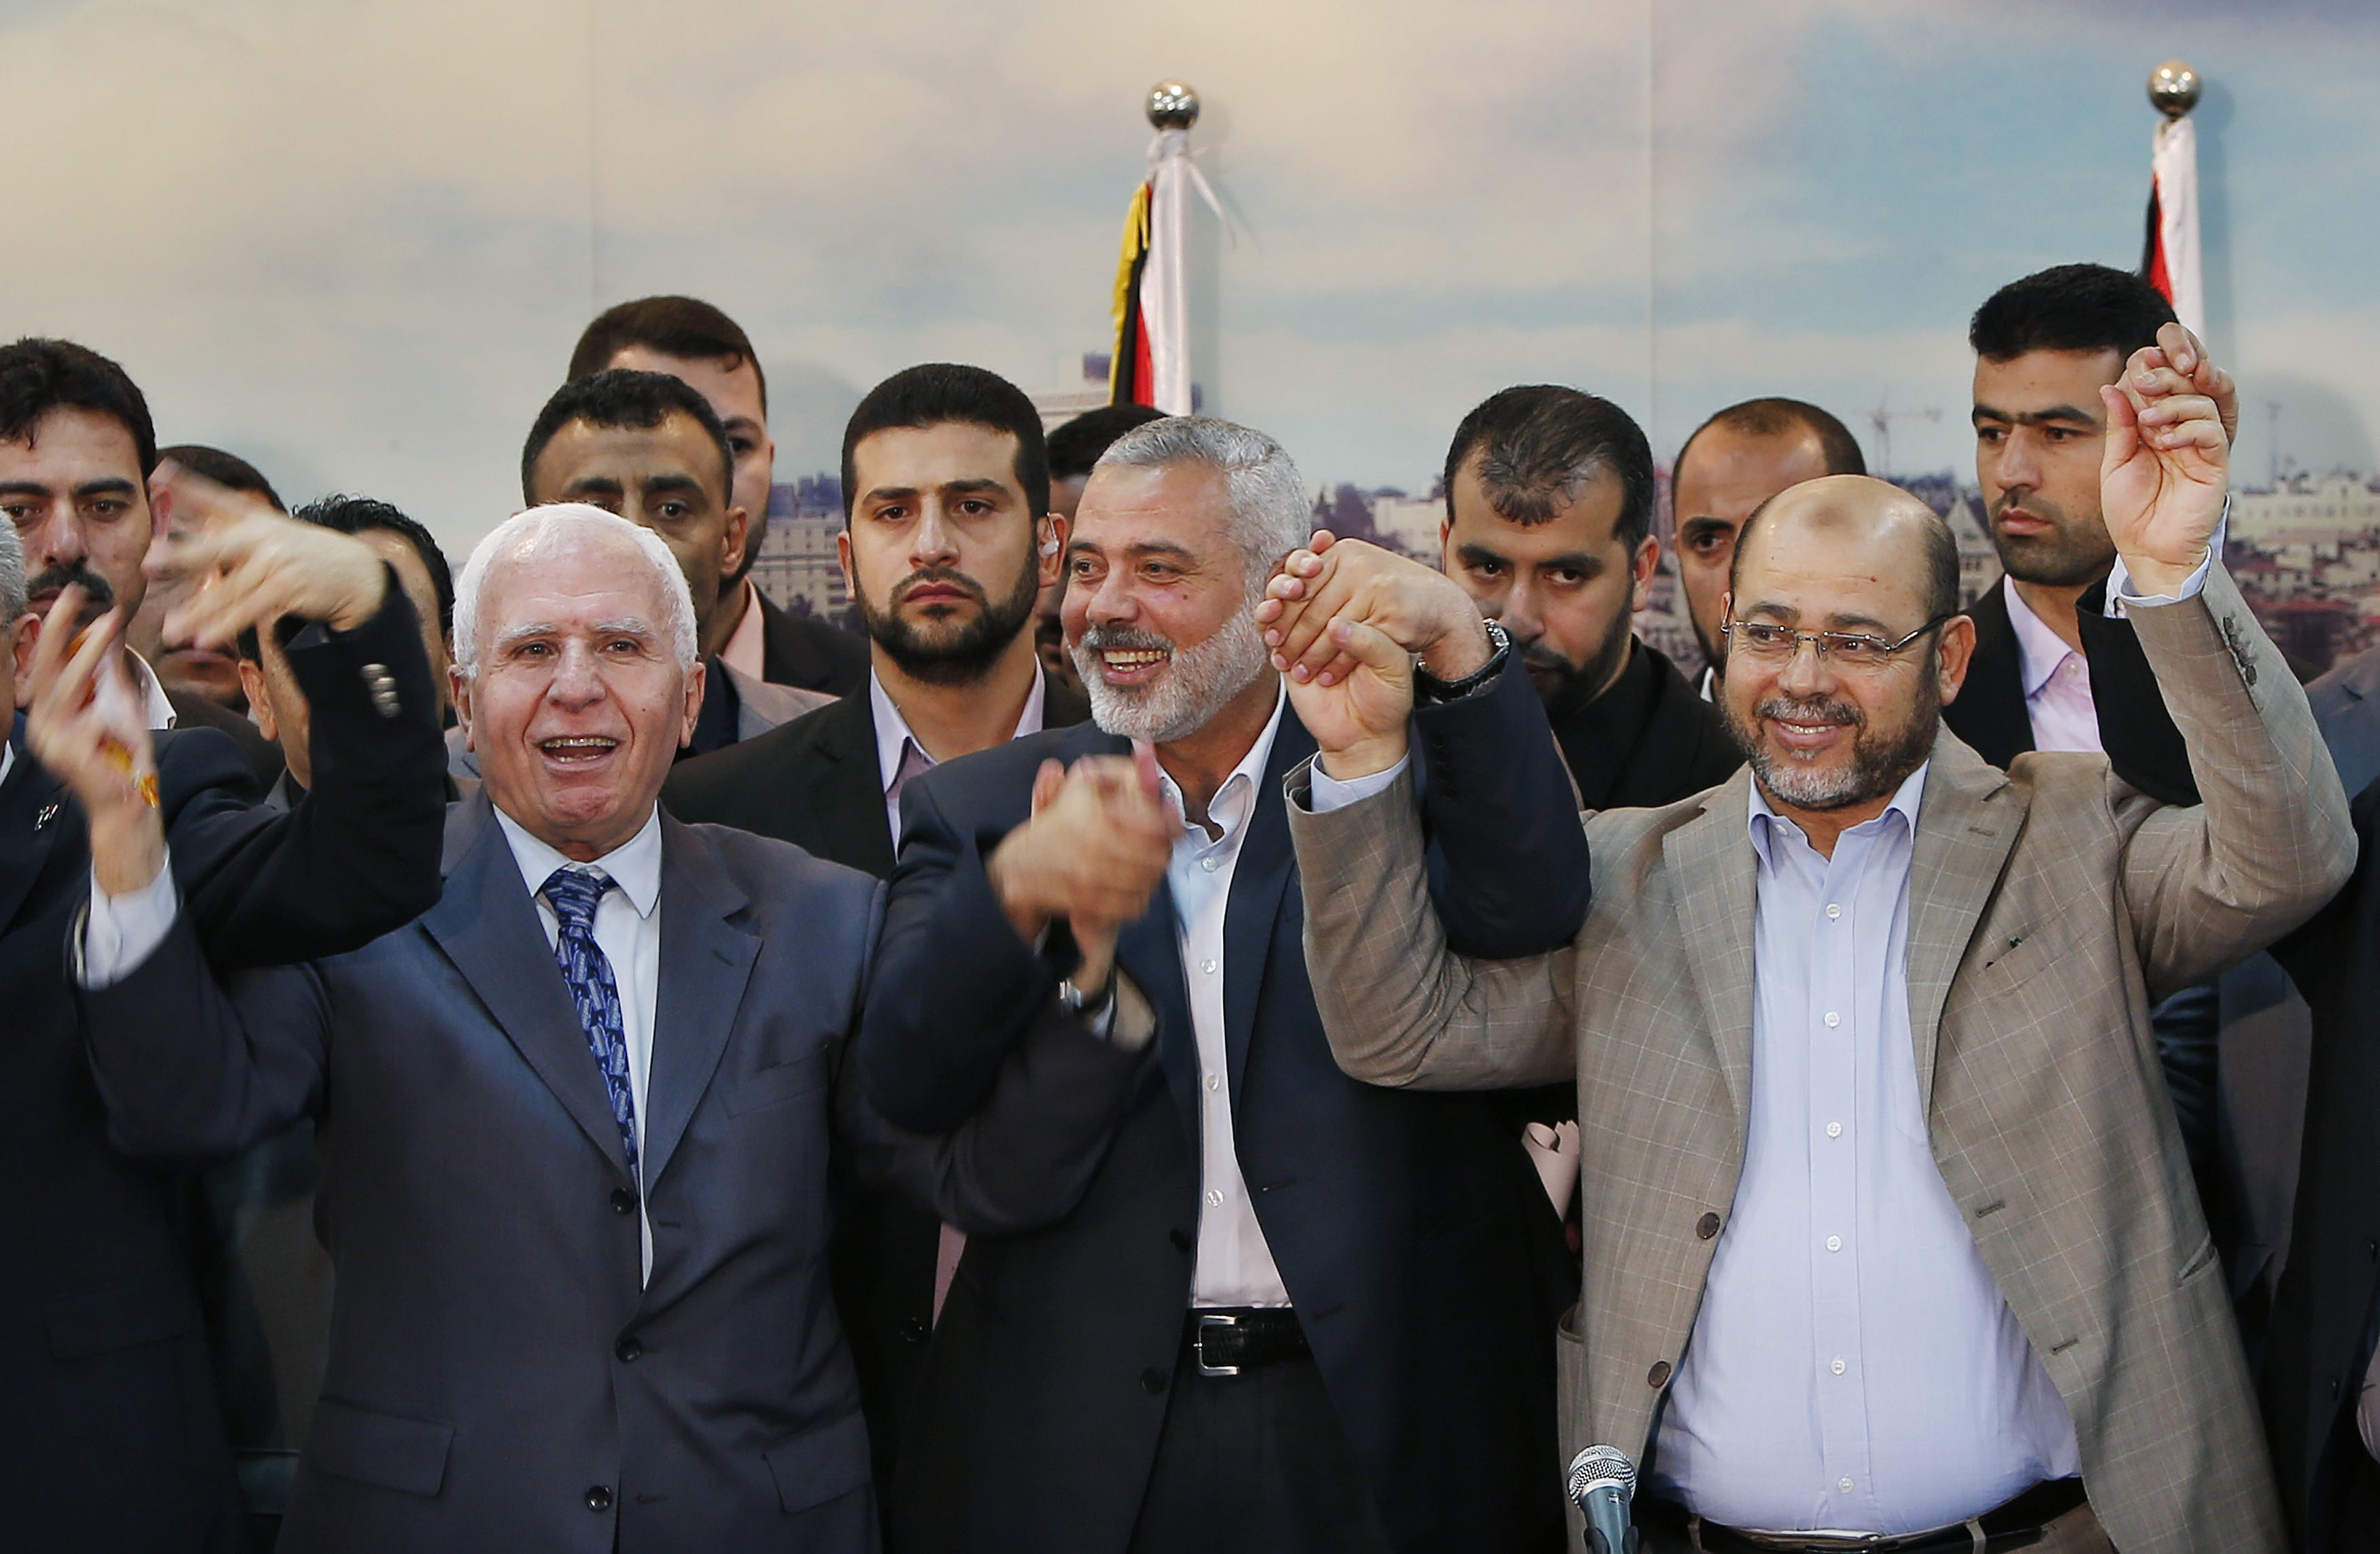 Hamas-Fatah Reconciliation? The Implications